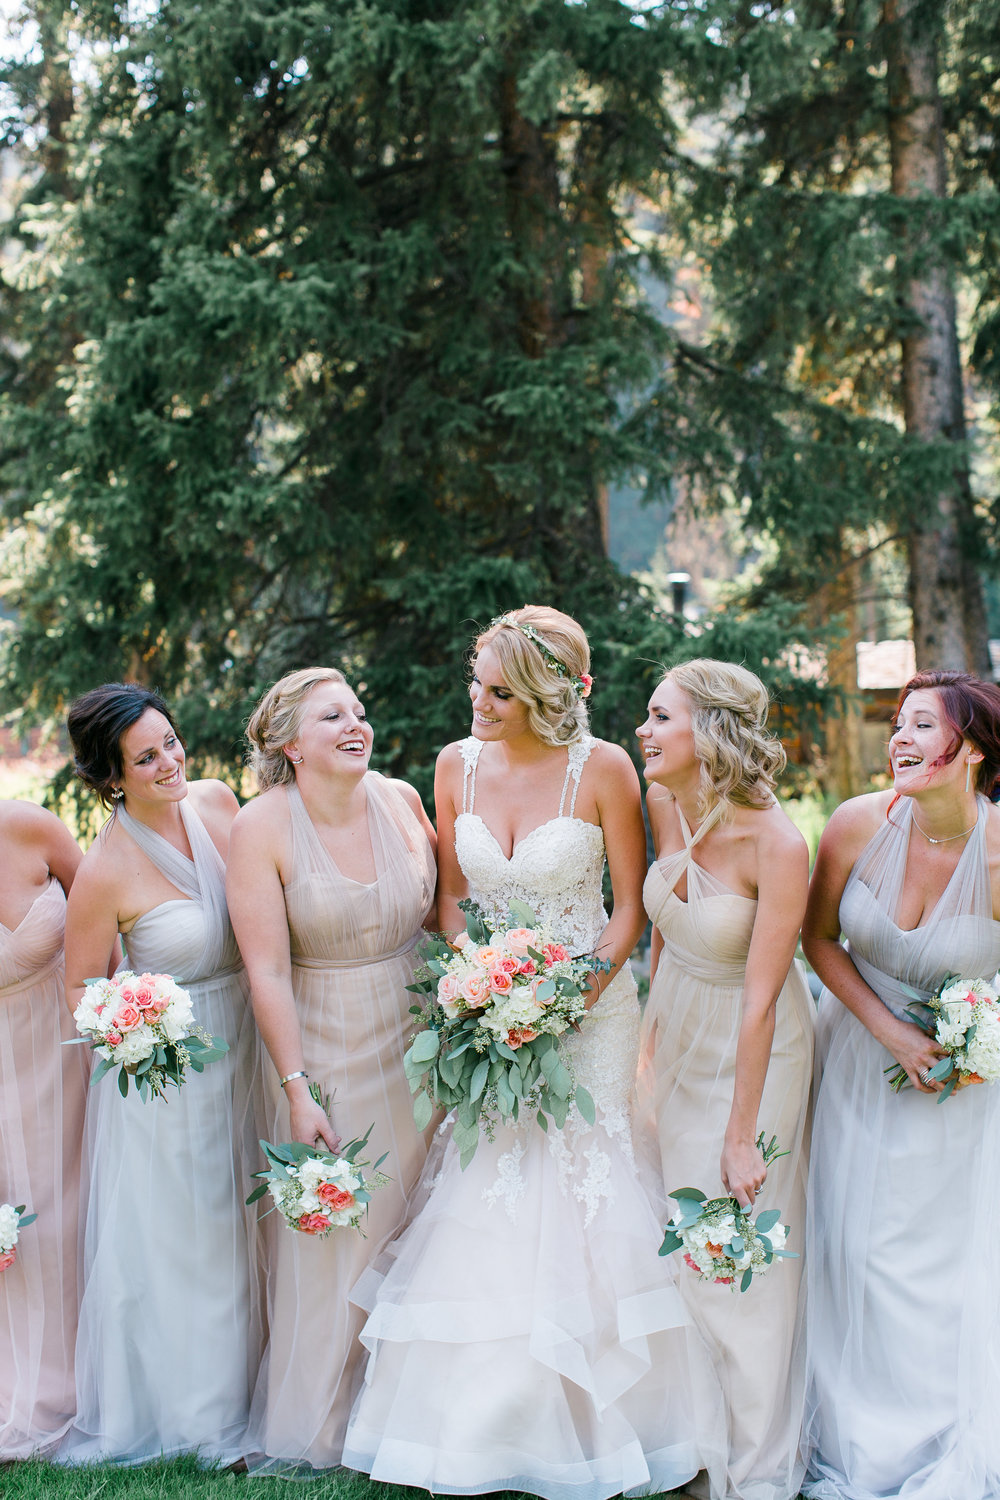 Boho bride with bridesmaids in neutral dresses with bouquets laughing Montana Big Sky Lone Mountain Ranch wedding Minnesota wedding photography Mallory Kiesow Photography